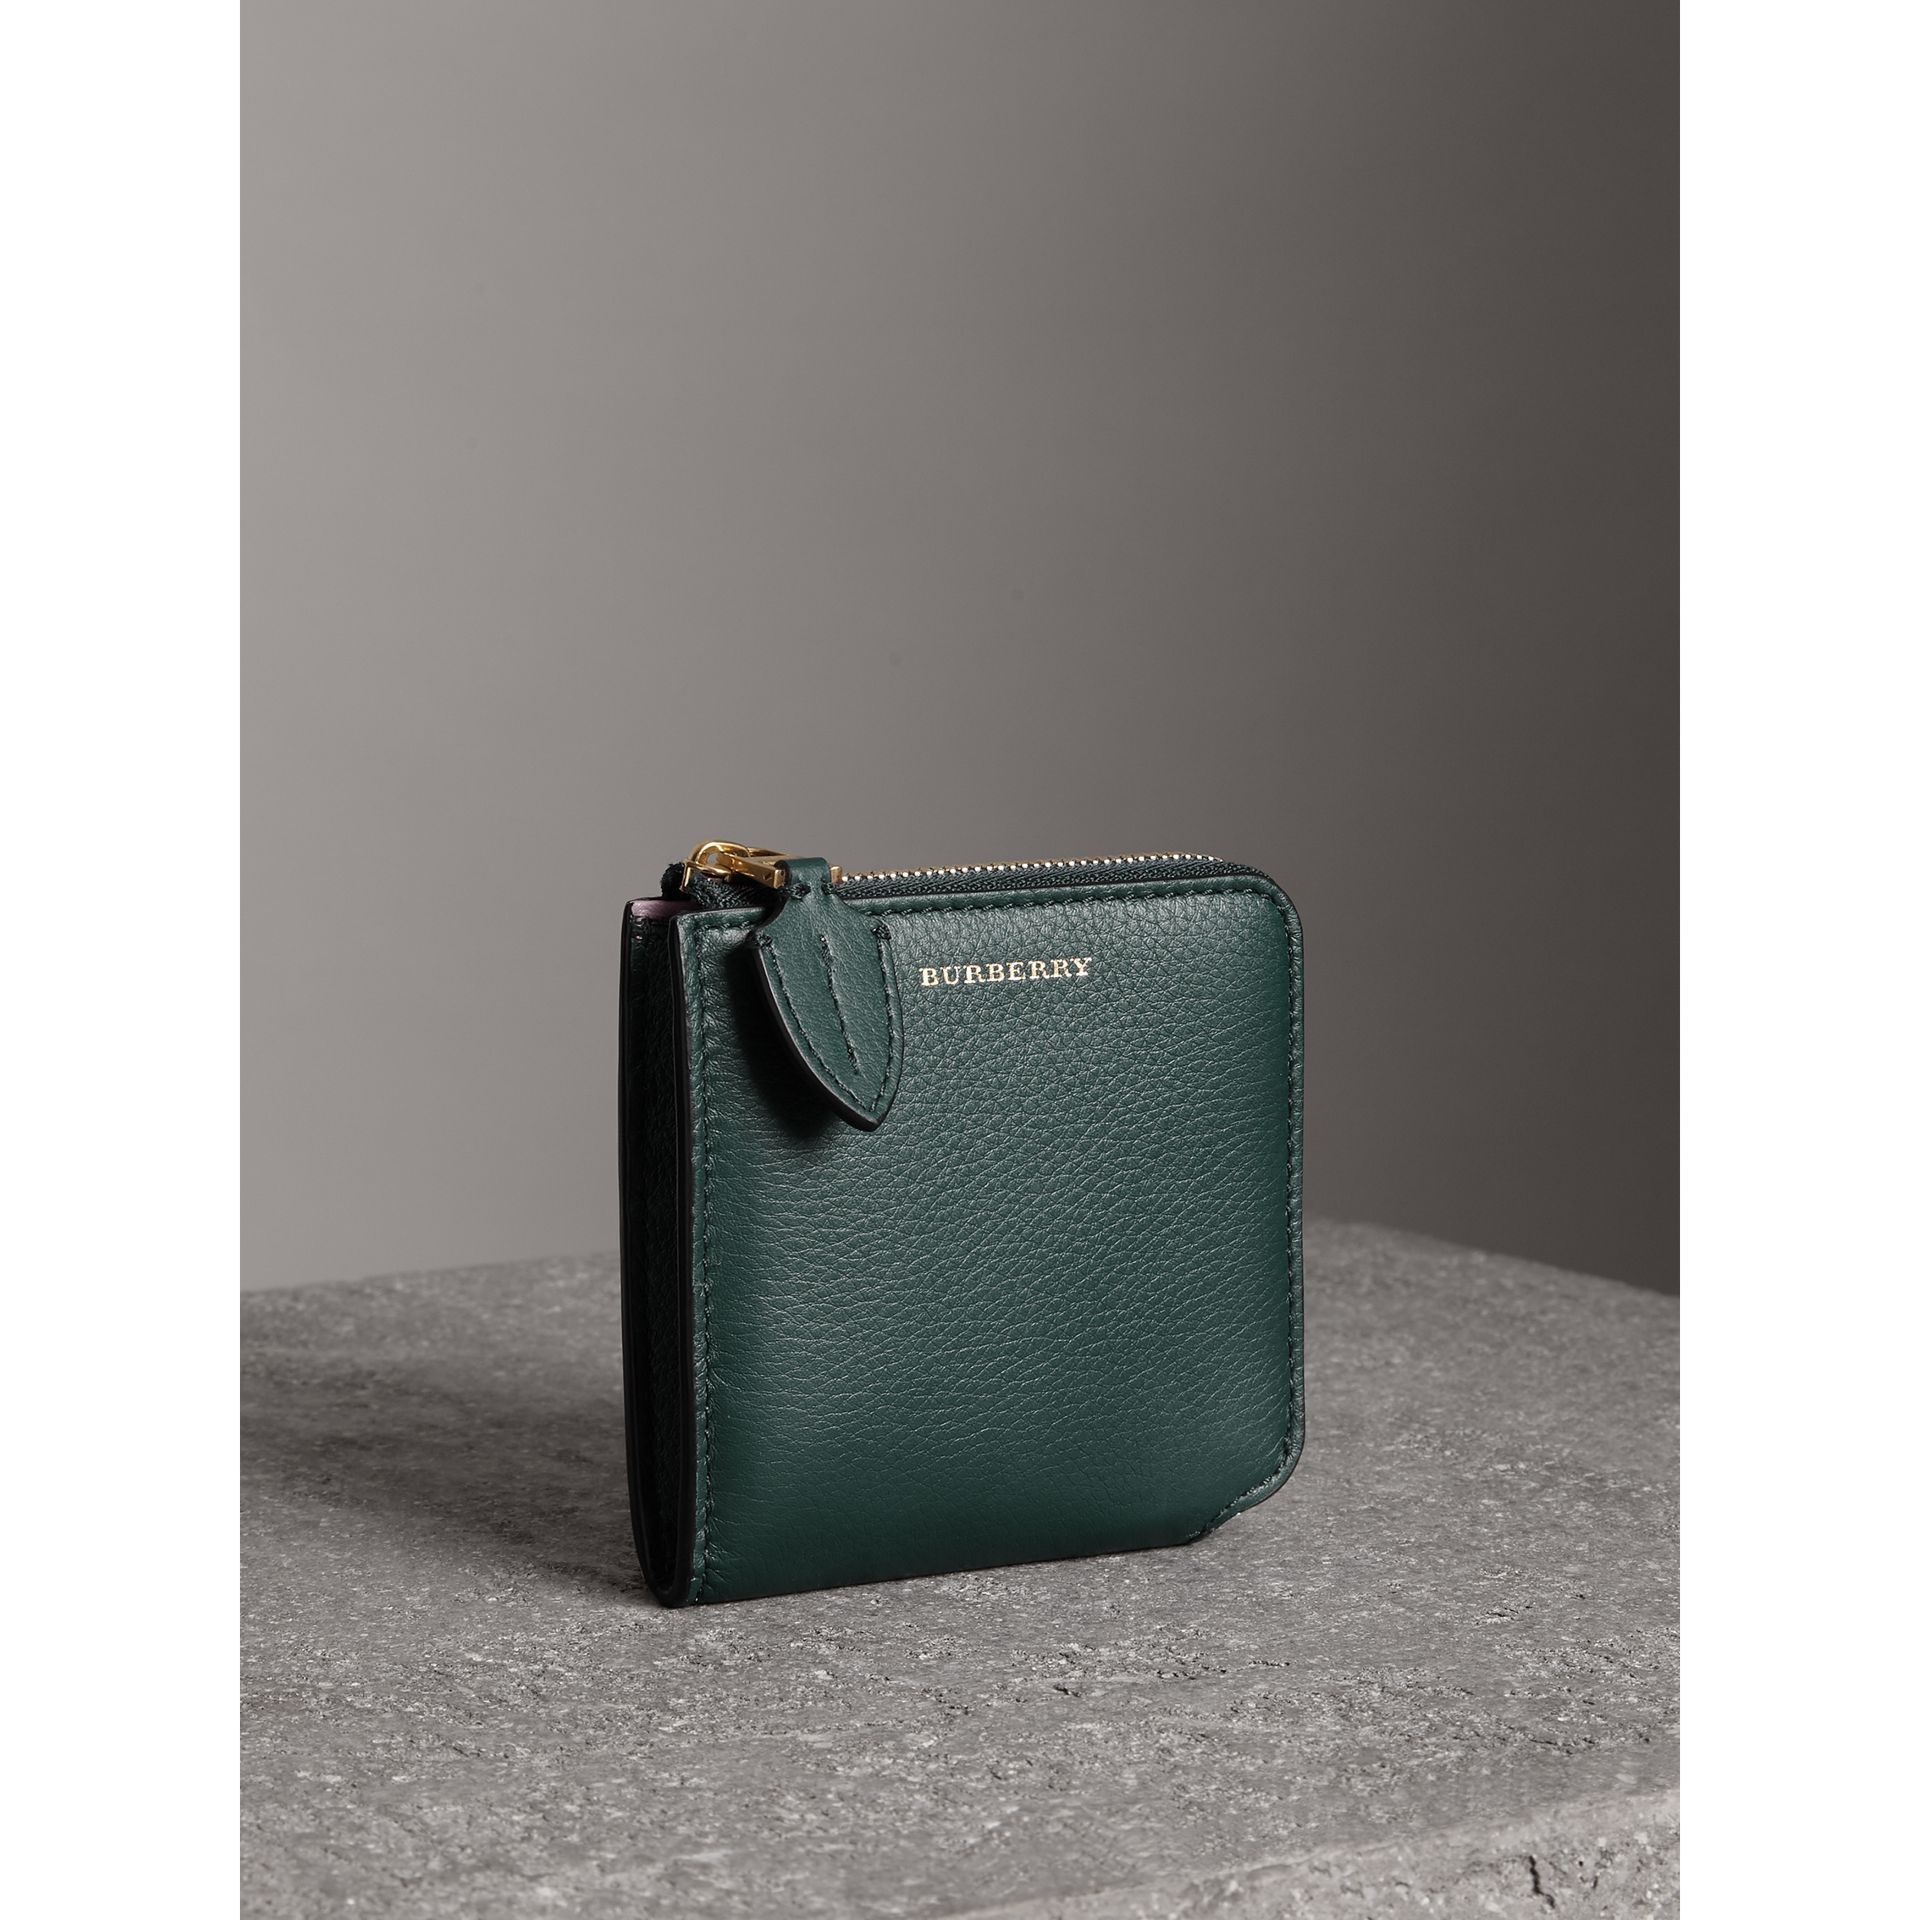 Grainy Leather Square Ziparound Wallet in Dark Cyan - Women | Burberry Singapore - gallery image 4